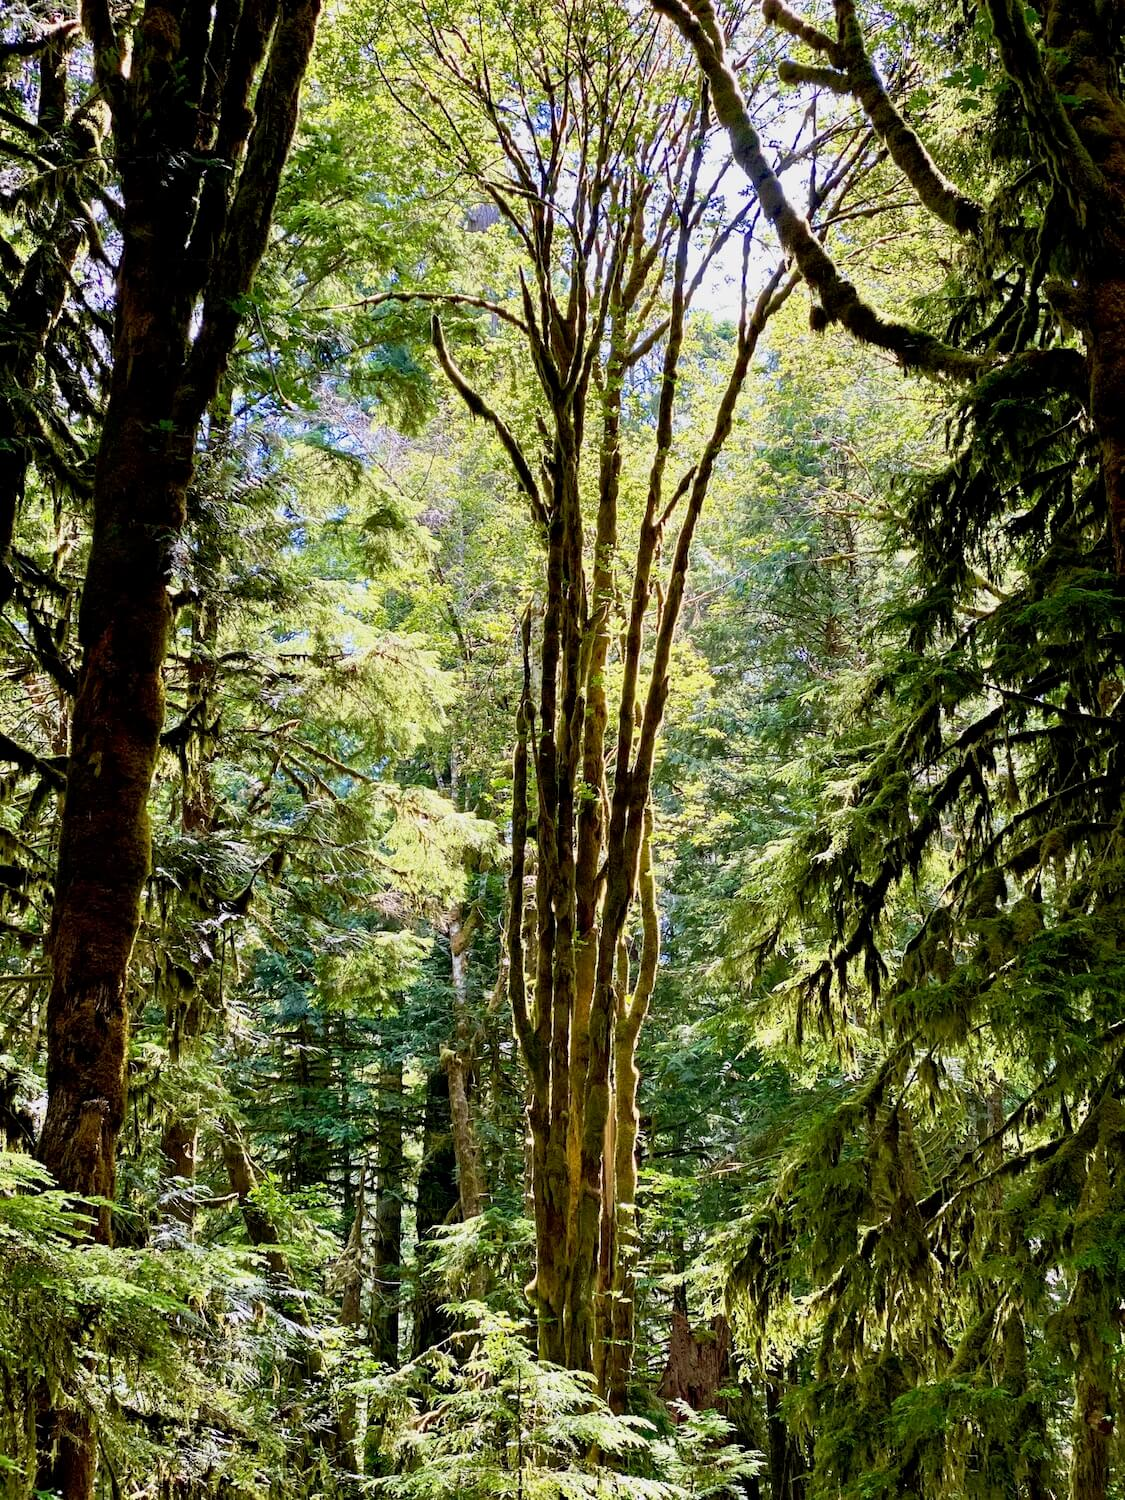 This photo is damp and full of mossy life. This very vertical moss soaked maple tree extends up a hundred feet to the top of the forest canopy while western cedar trees frame in the shot with their distinct rich waxy green needles.